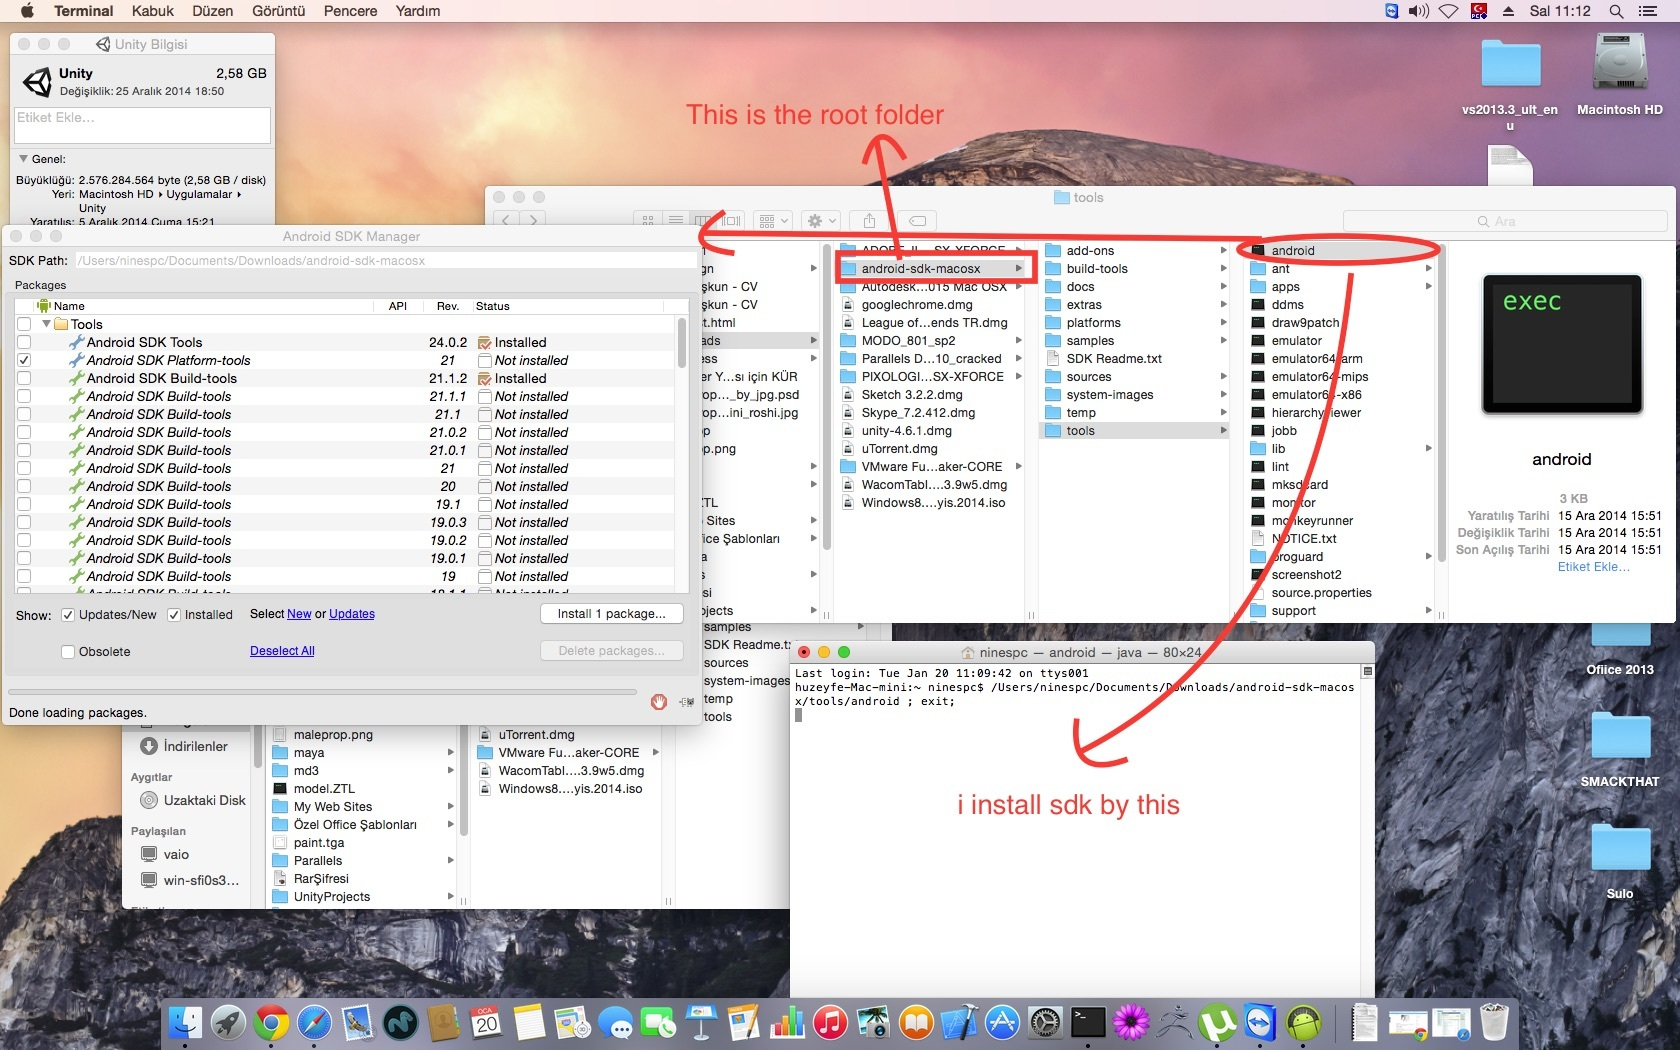 Mac OSX Yosemite issue ? Cannot locate Android SDK root folder